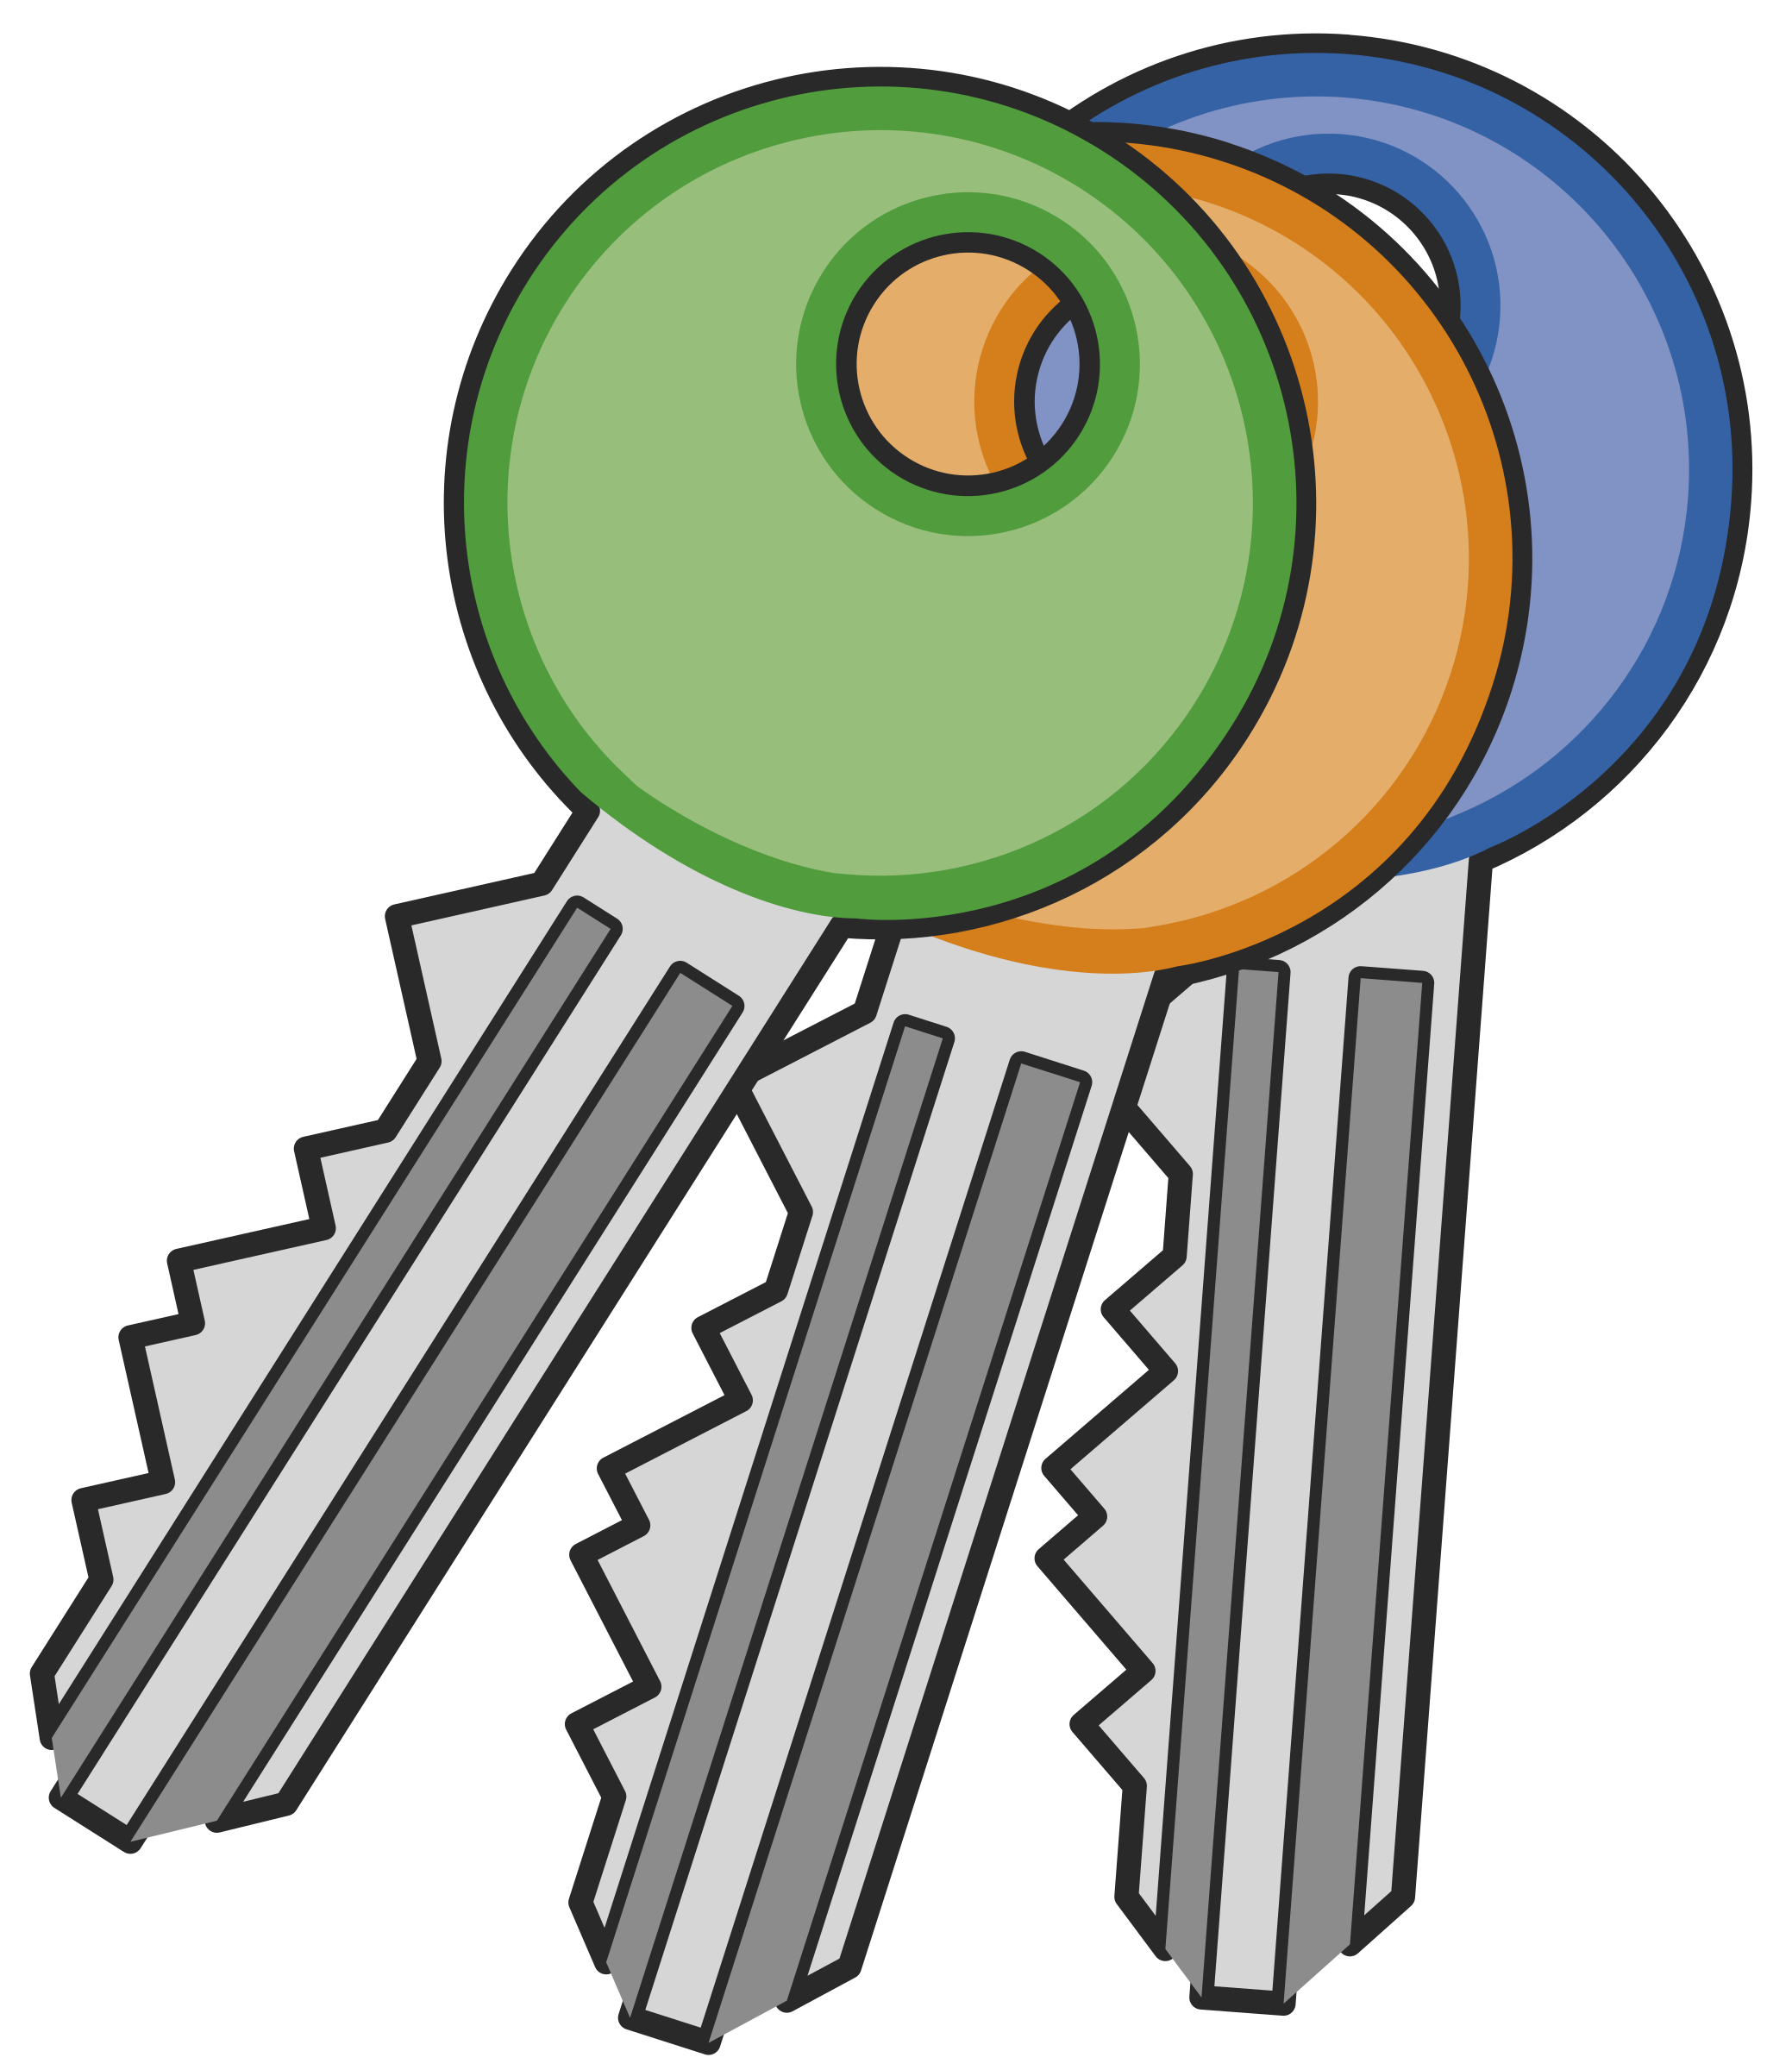 Keys clipart png. Three icons free and